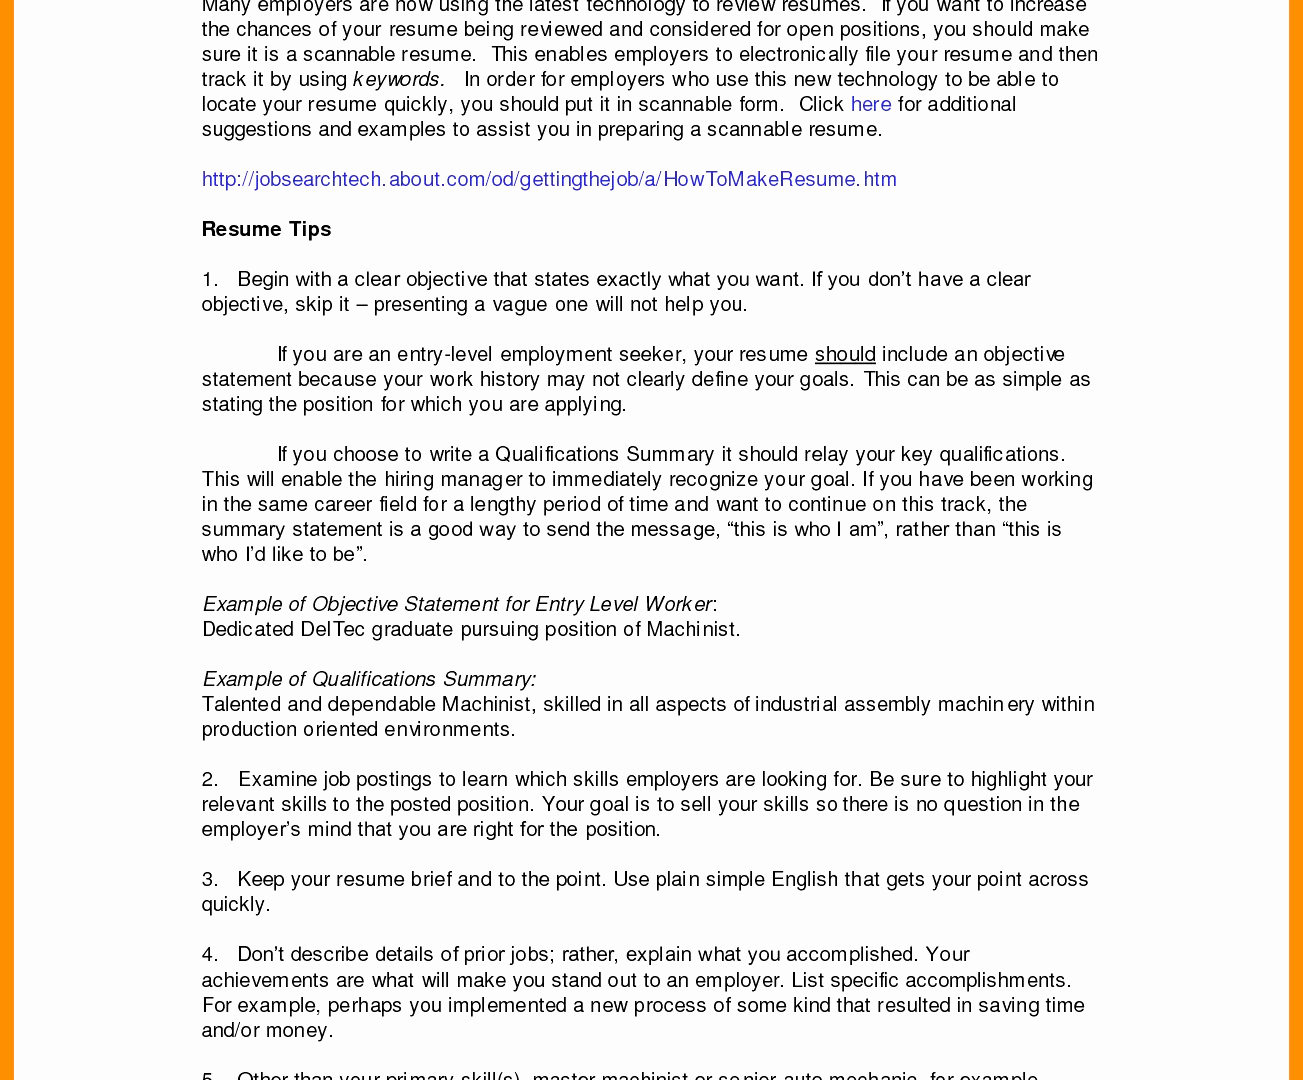 Flight attendant Resume - Flight attendant Resume Examples New How to Write A Cover Letter for